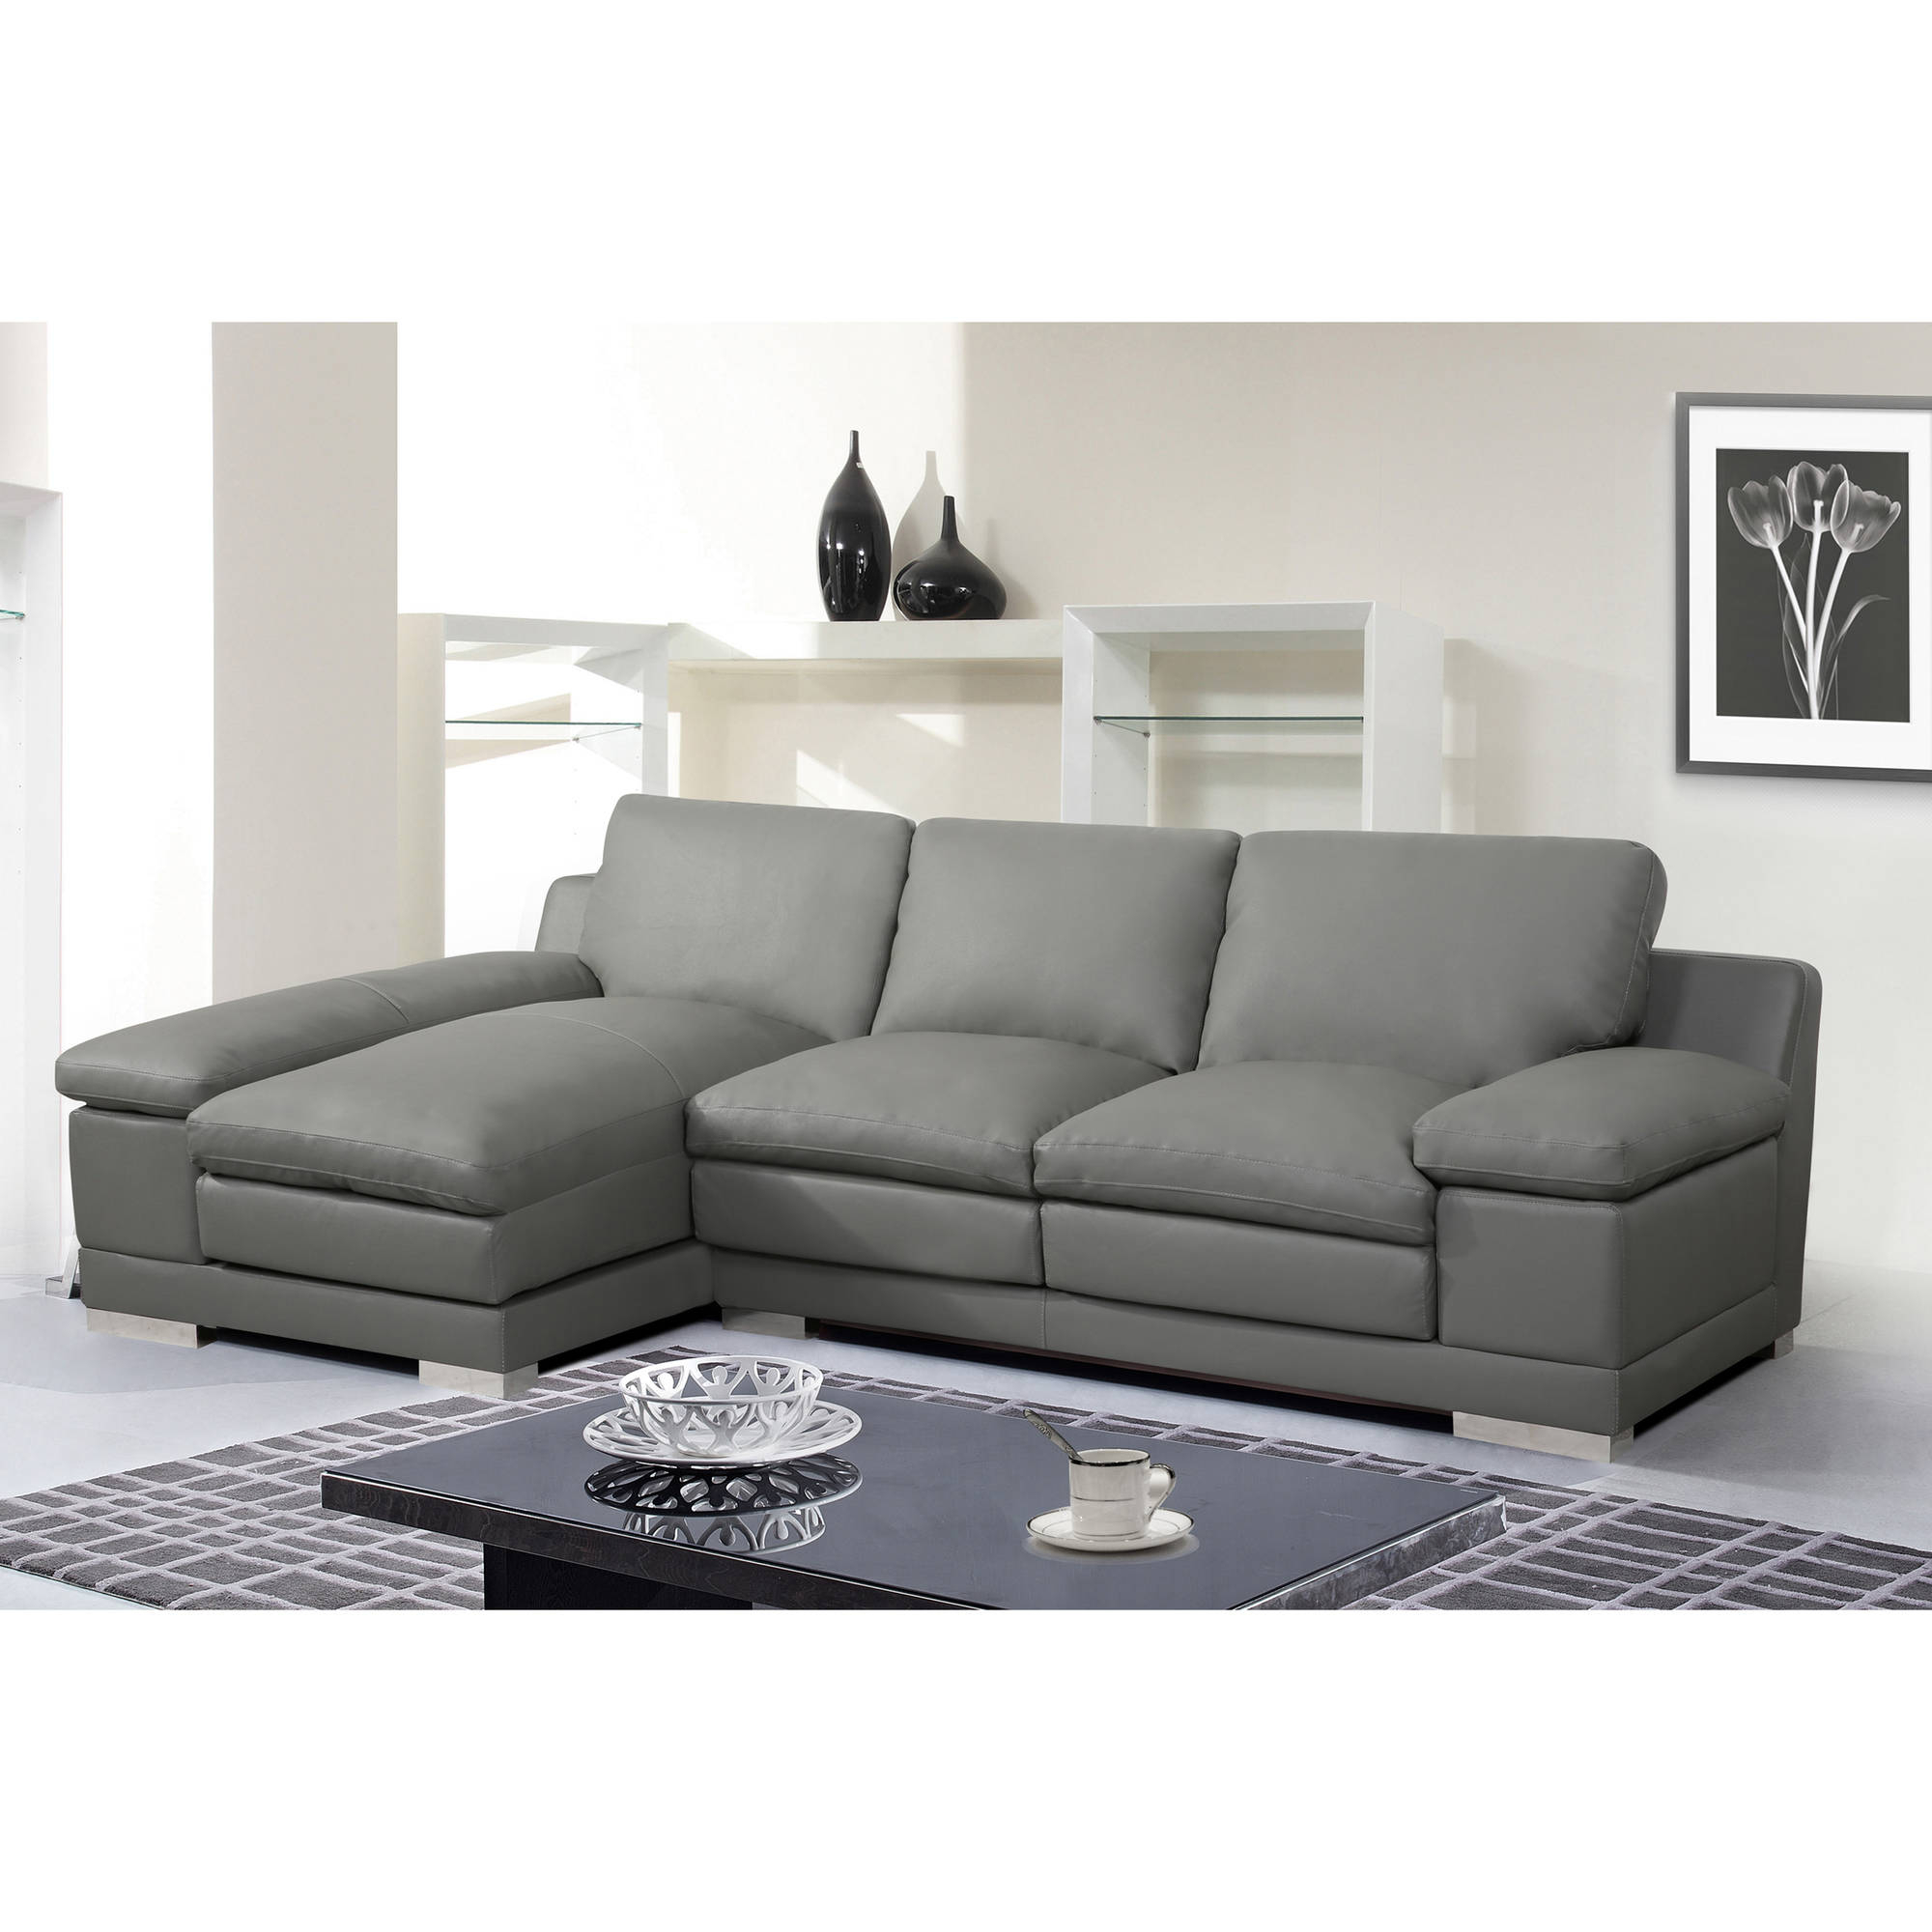 Fashionable Adrian Contemporary Bonded Leather Right Facing 2 Piece Regarding Florence Mid Century Modern Right Sectional Sofas Cognac Tan (View 1 of 20)